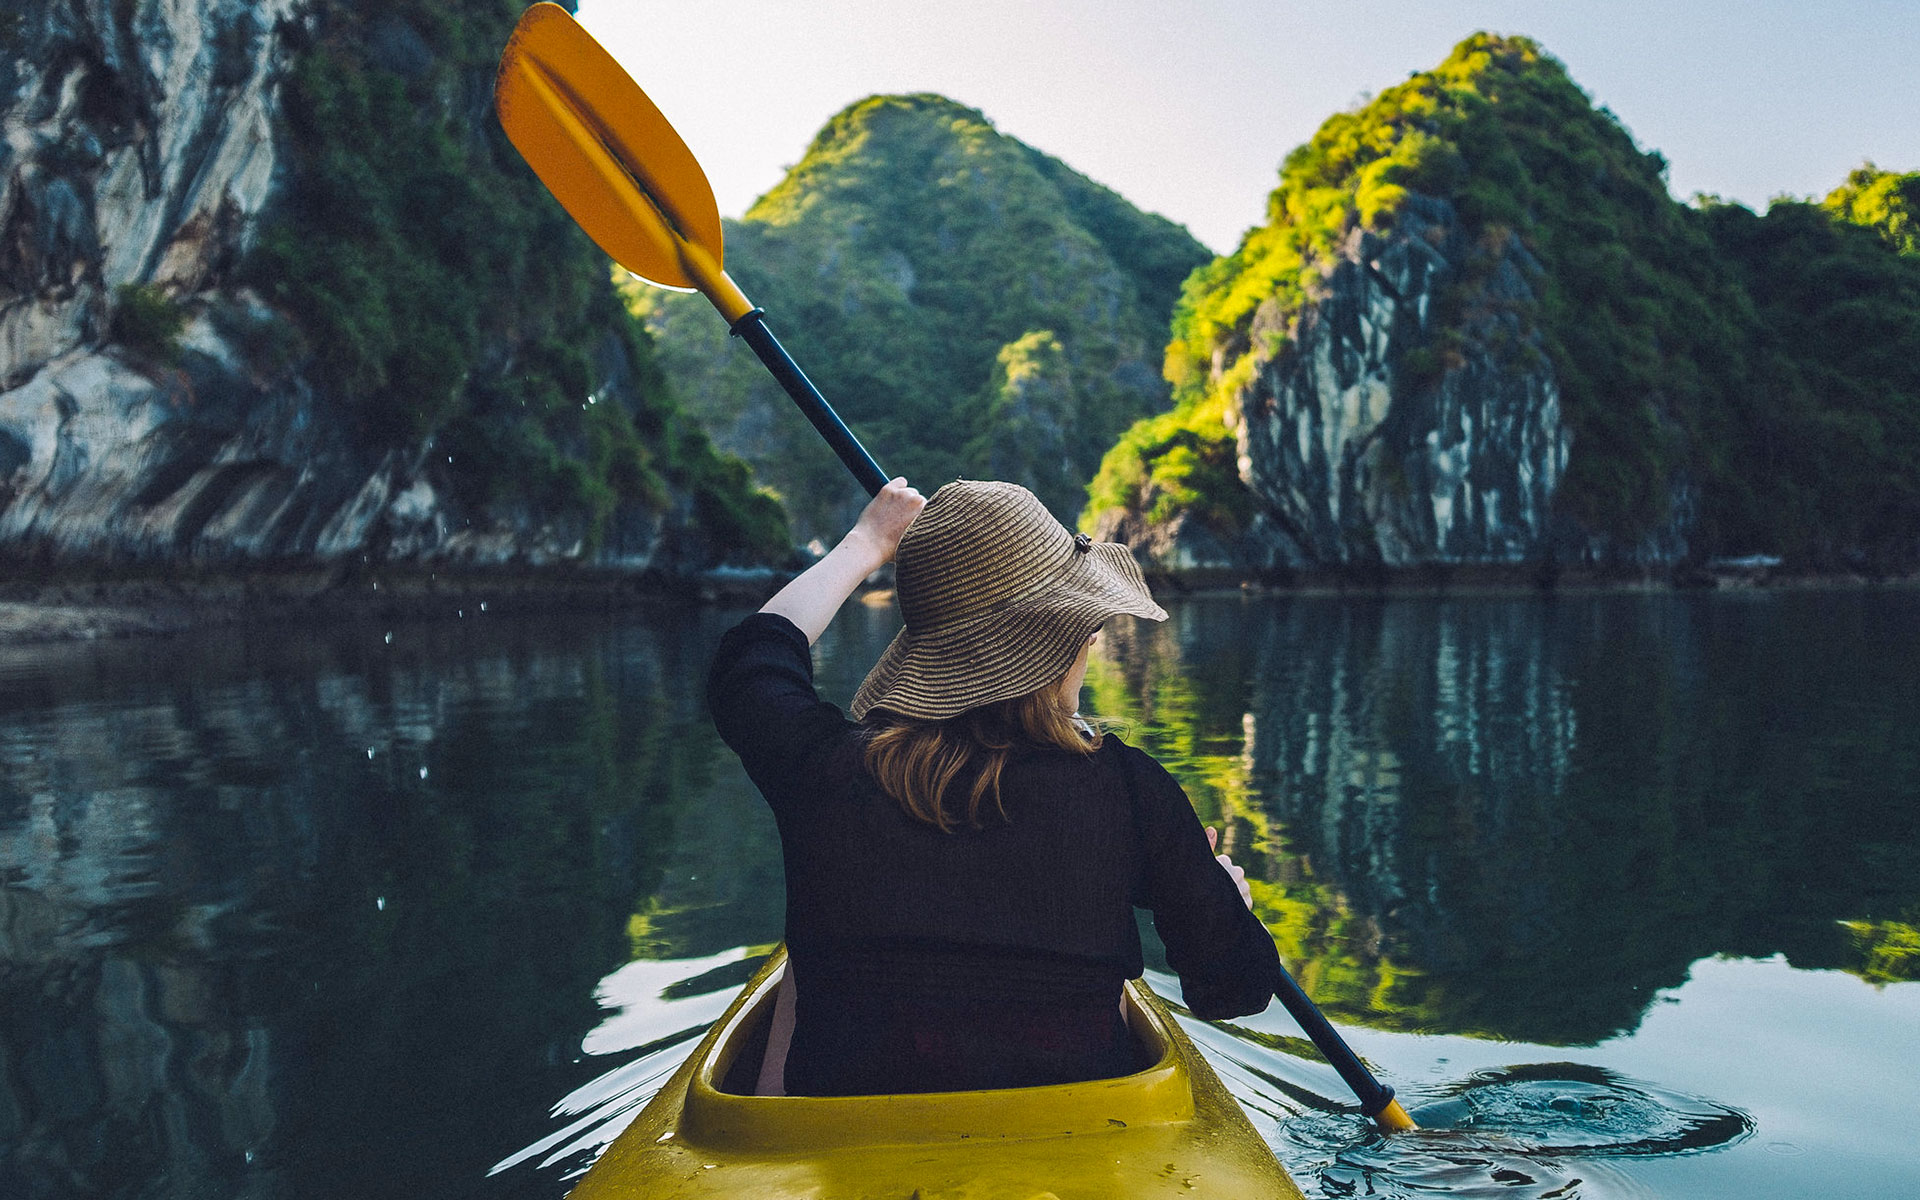 Kayaking is a favorite activity on Halong Bay